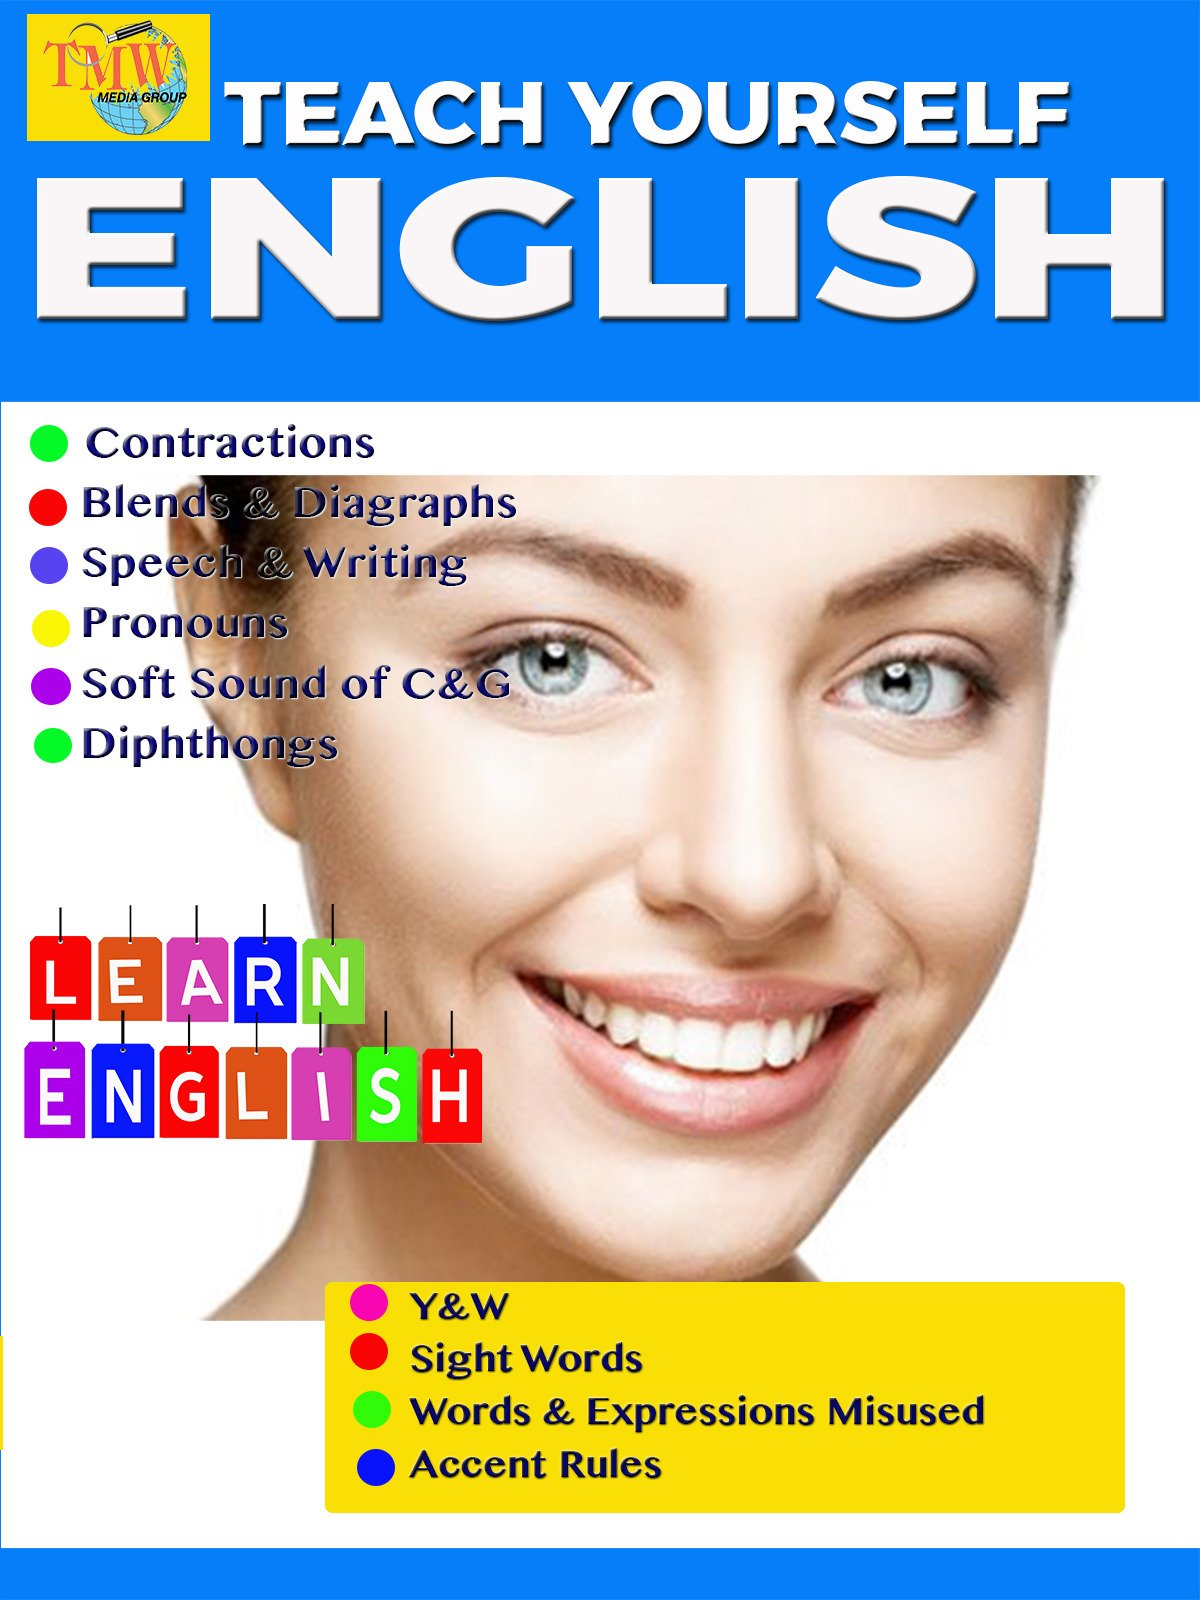 Teach Yourself English: Contractions, Blends & Diagraphs, Speech & Writing, Pronouns, Soft Sound of C & G, Diphthongs, Y & W, Sight Words, Words & Expressions Misused, Accent Rules